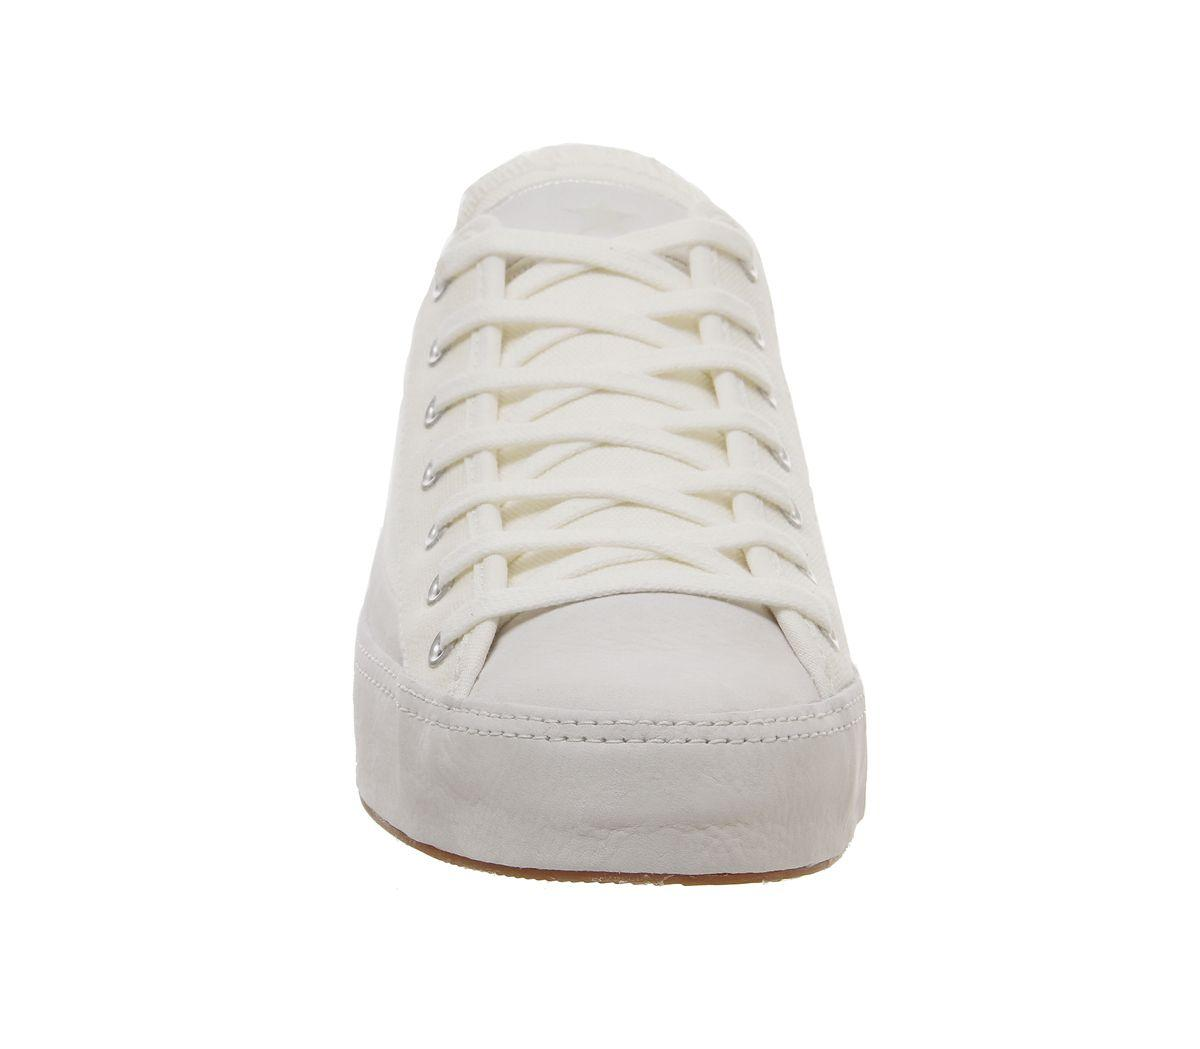 Converse Canvas Sasha Ox Trainers in